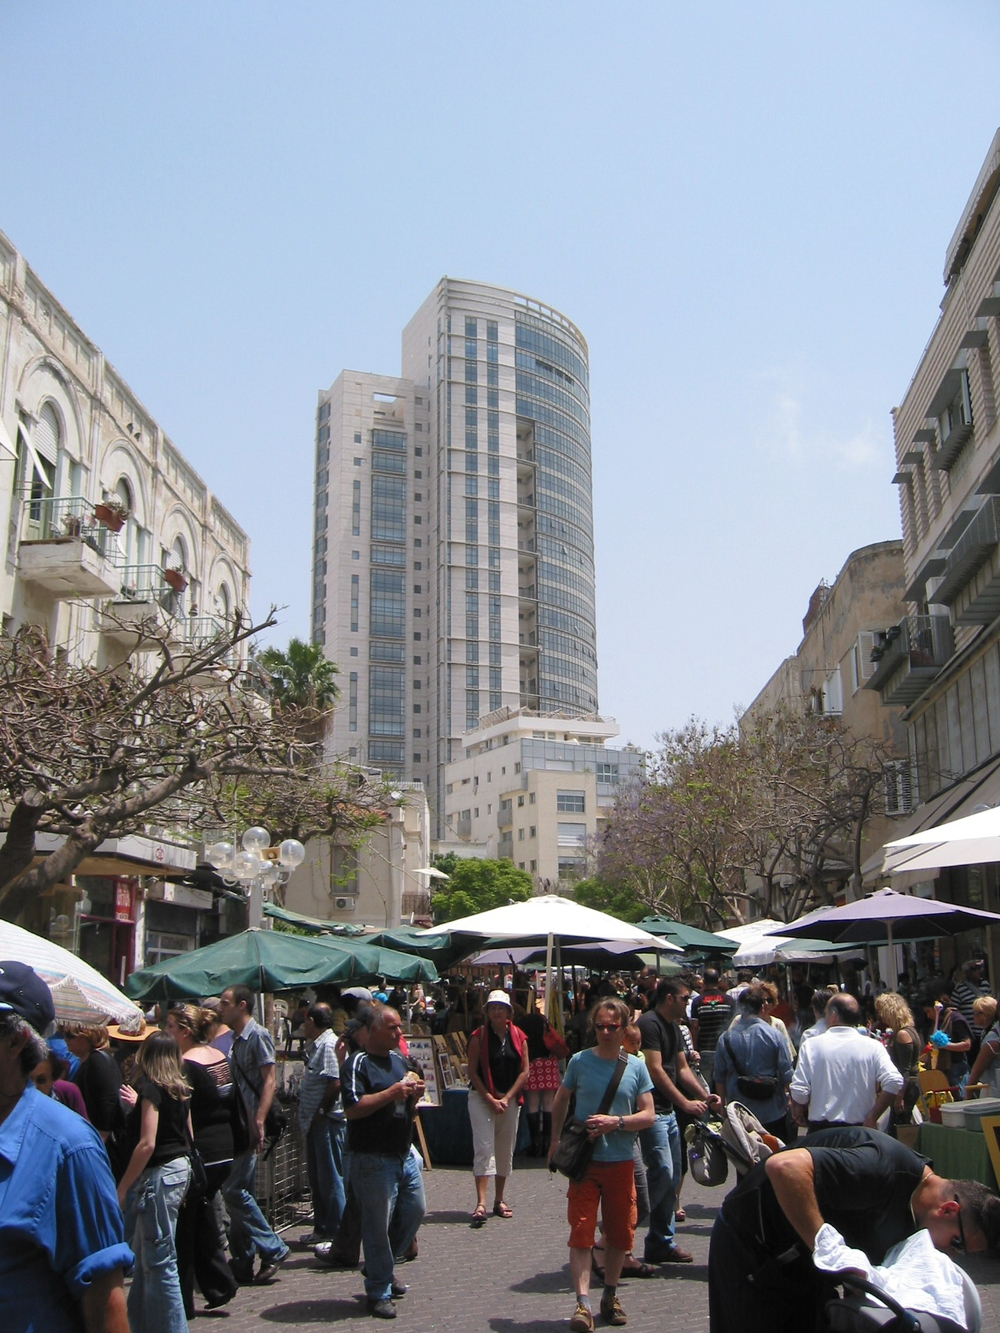 Click photo to download. Caption: Nahalat Binyamin Street in Ron Huldai's city, Tel Aviv. Credit: Sambach/Wikimedia Commons.